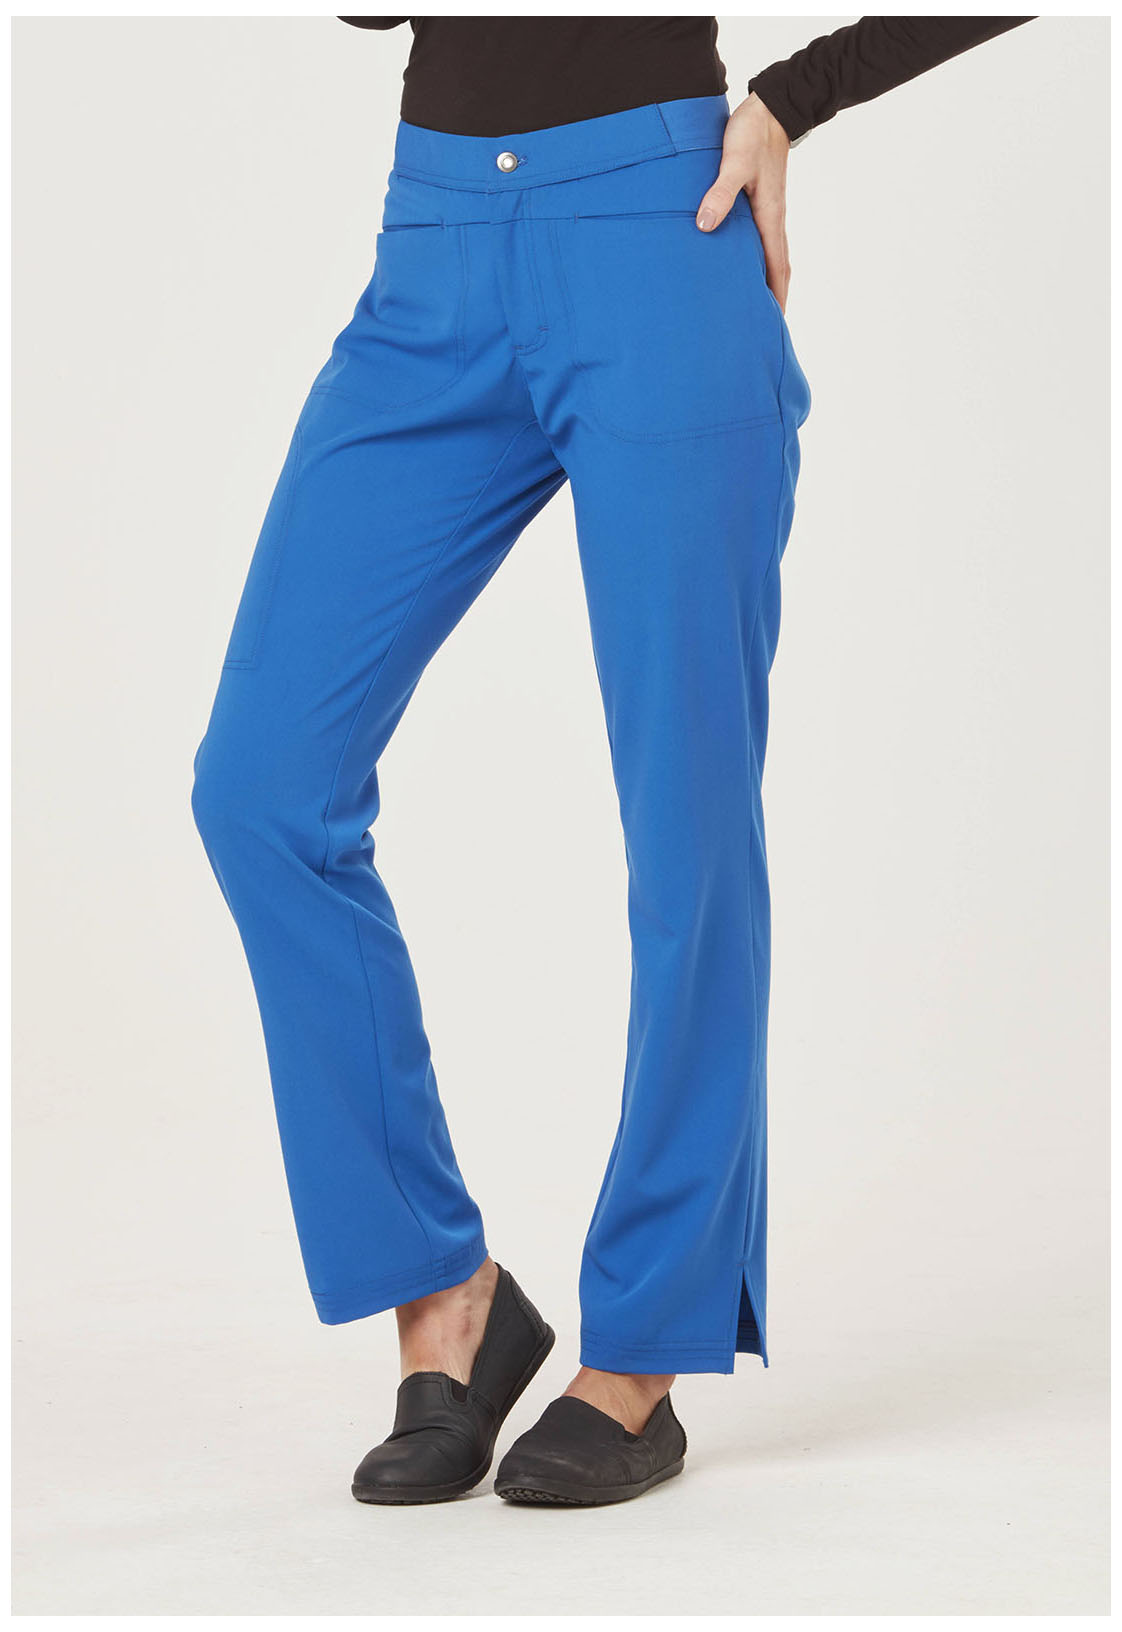 Sapphire u0026quot;Romau0026quot; Low Rise Zip Fly Slim Pant SA101A-ROY from Sapphire Scrubs